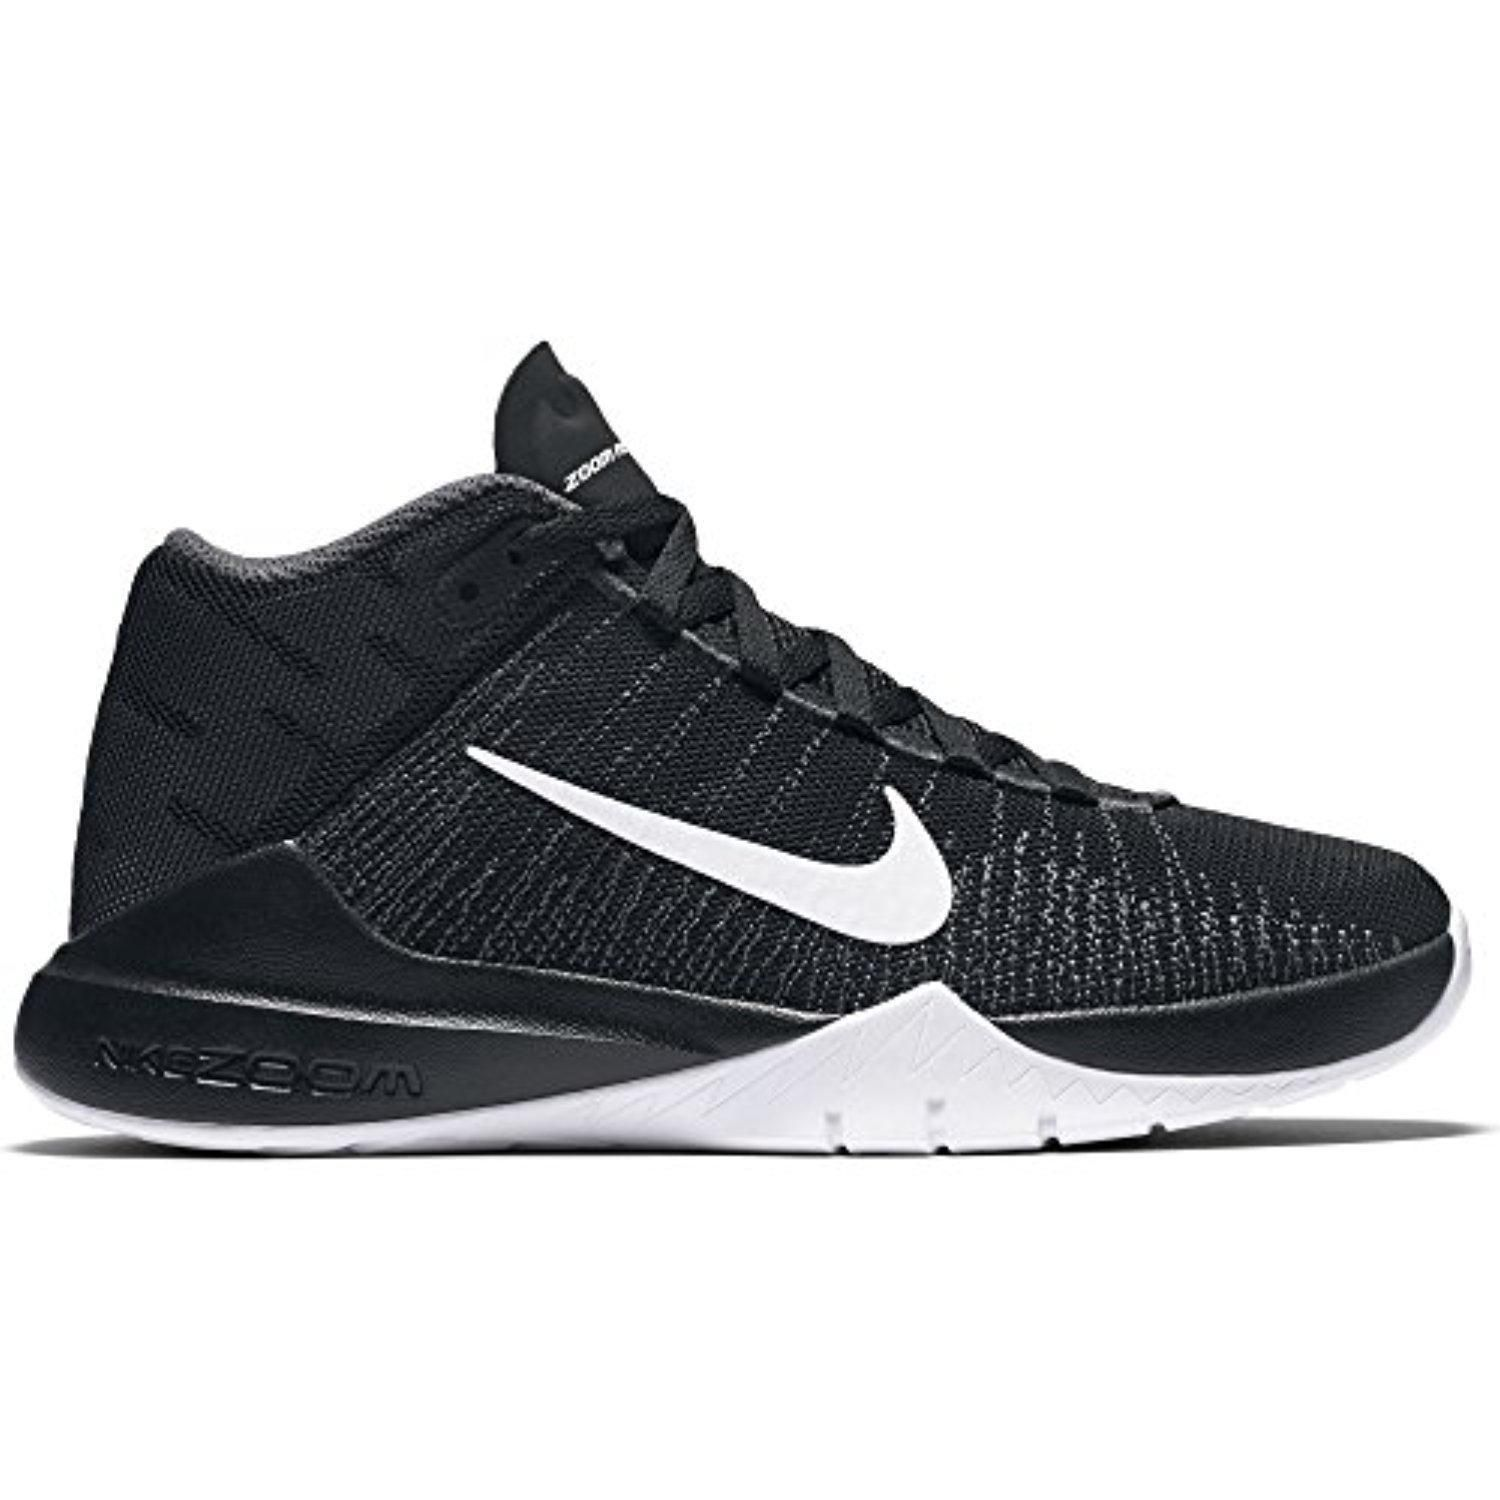 fefe204336cd Boy s Nike Zoom Ascention (GS) Basketball Shoe Black White Size 6 M US -  Brought to you by Avarsha.com